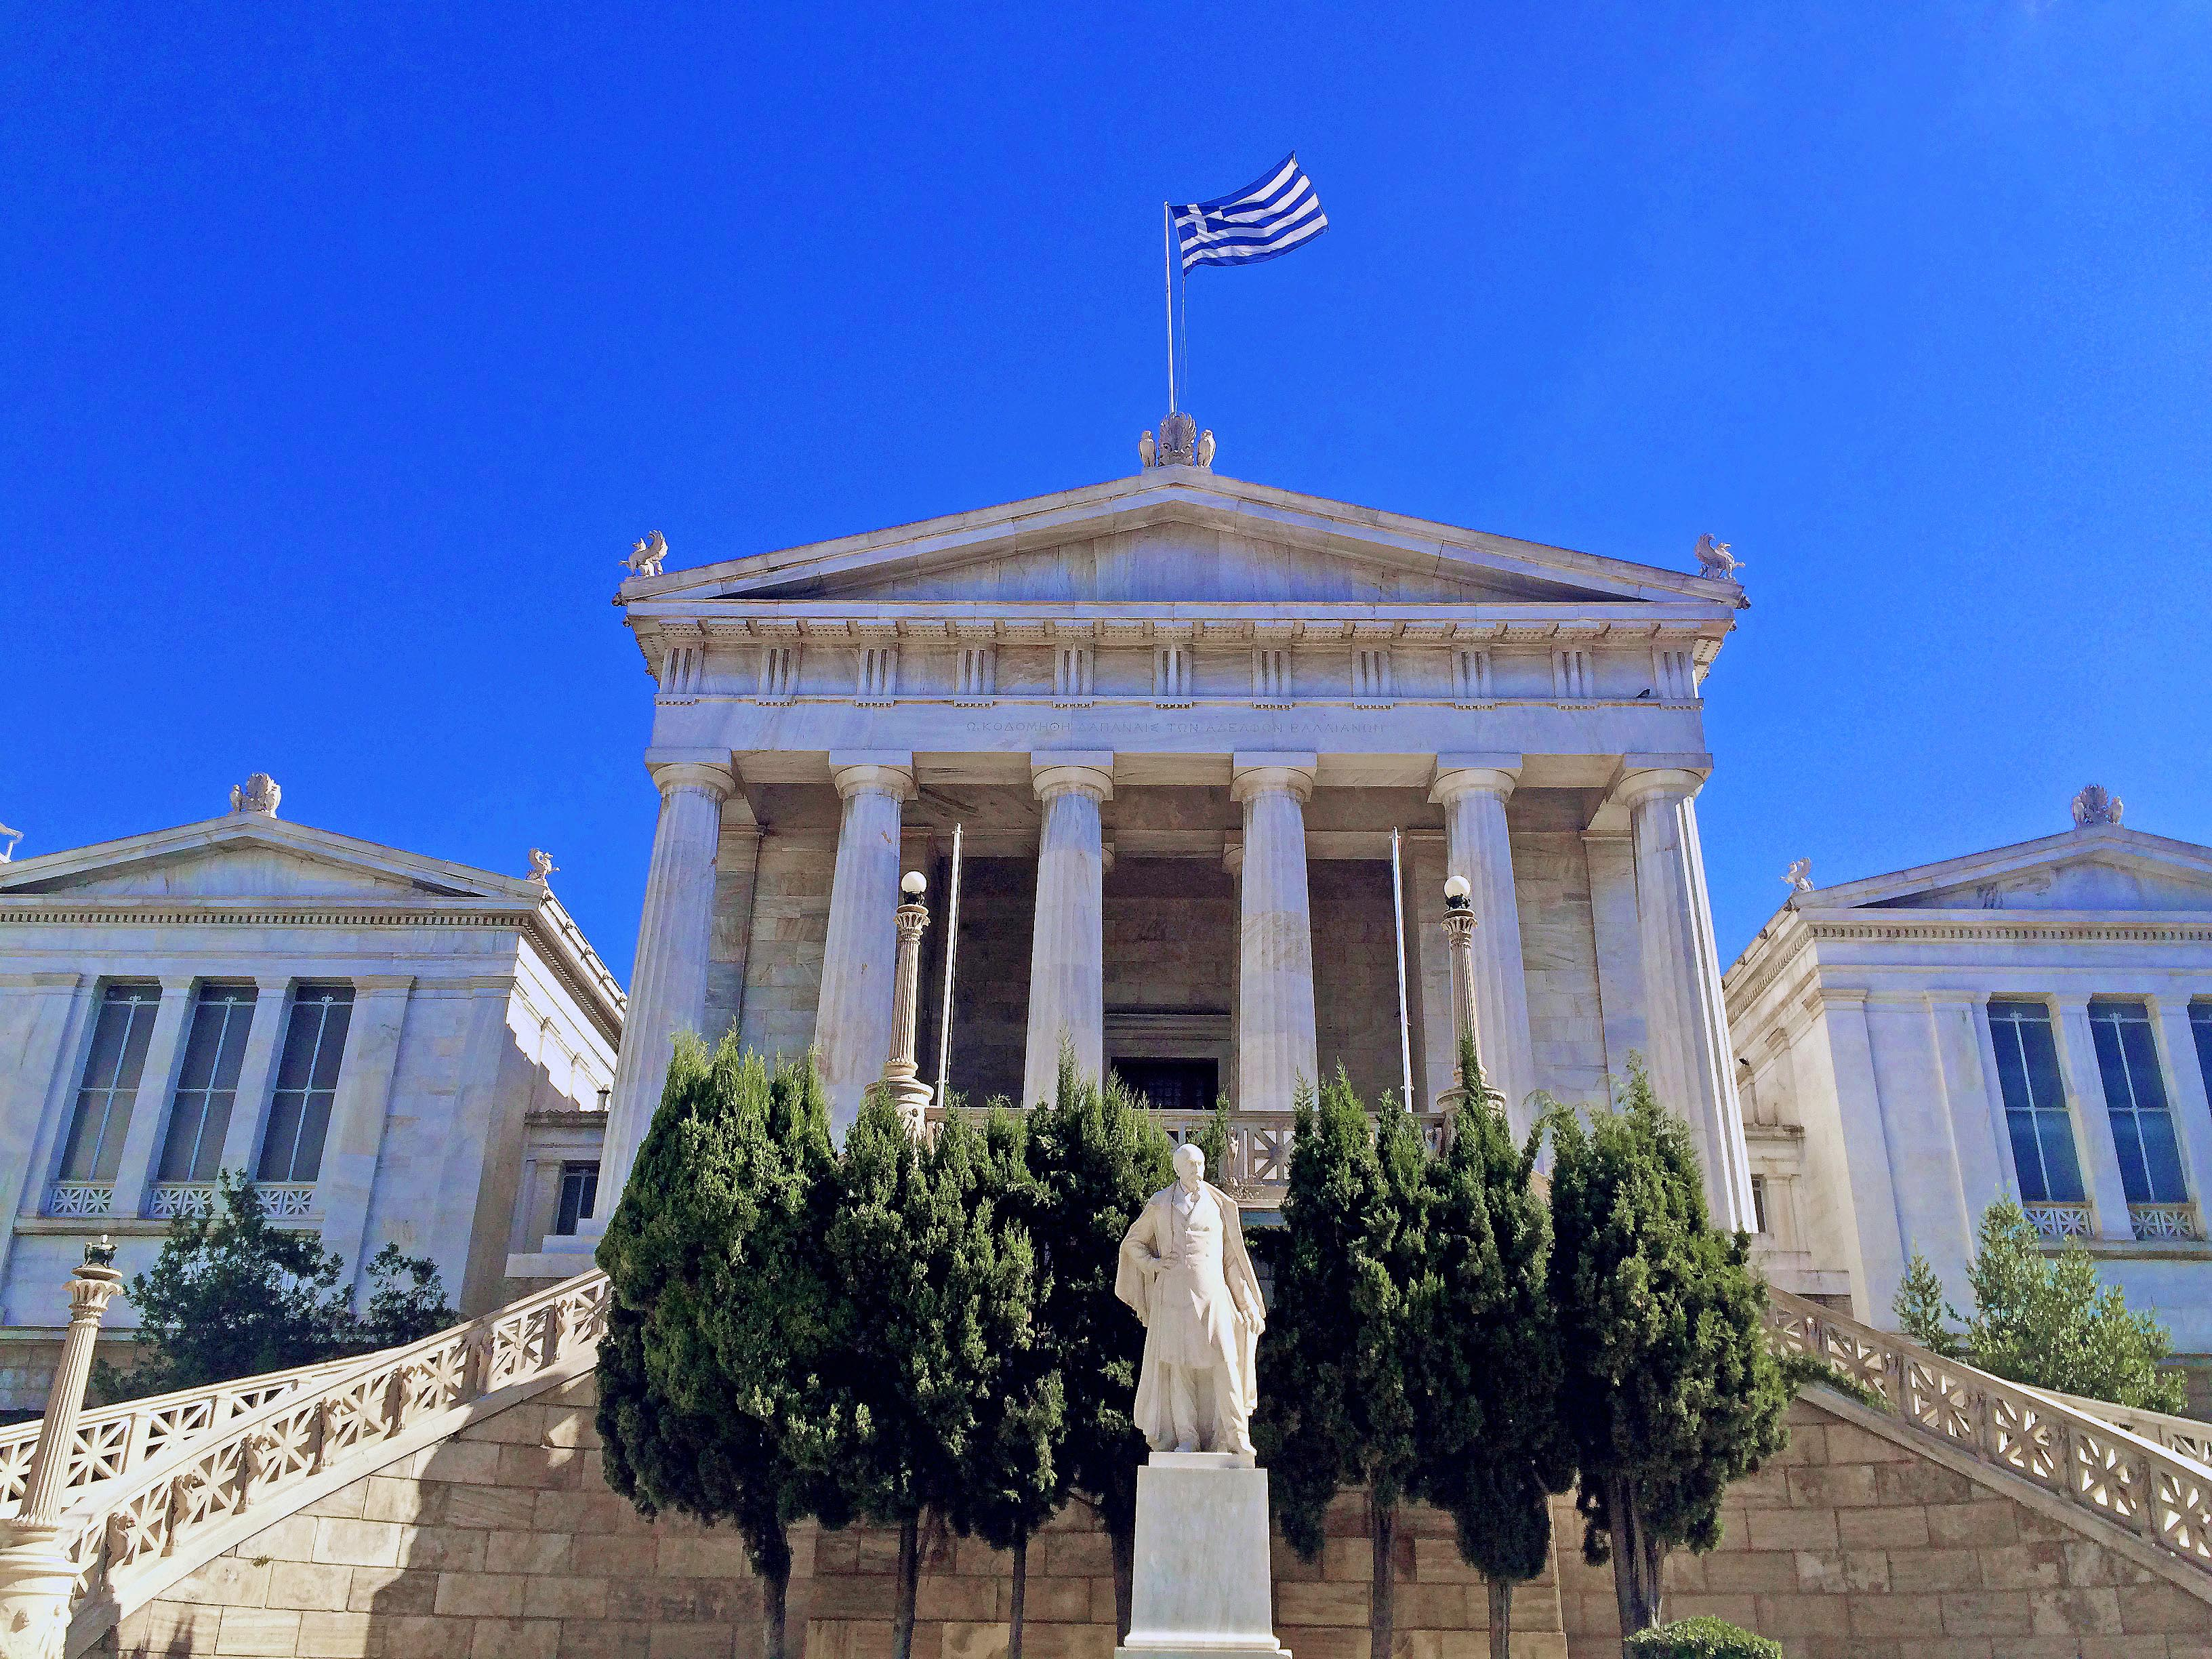 National Library of Greece;